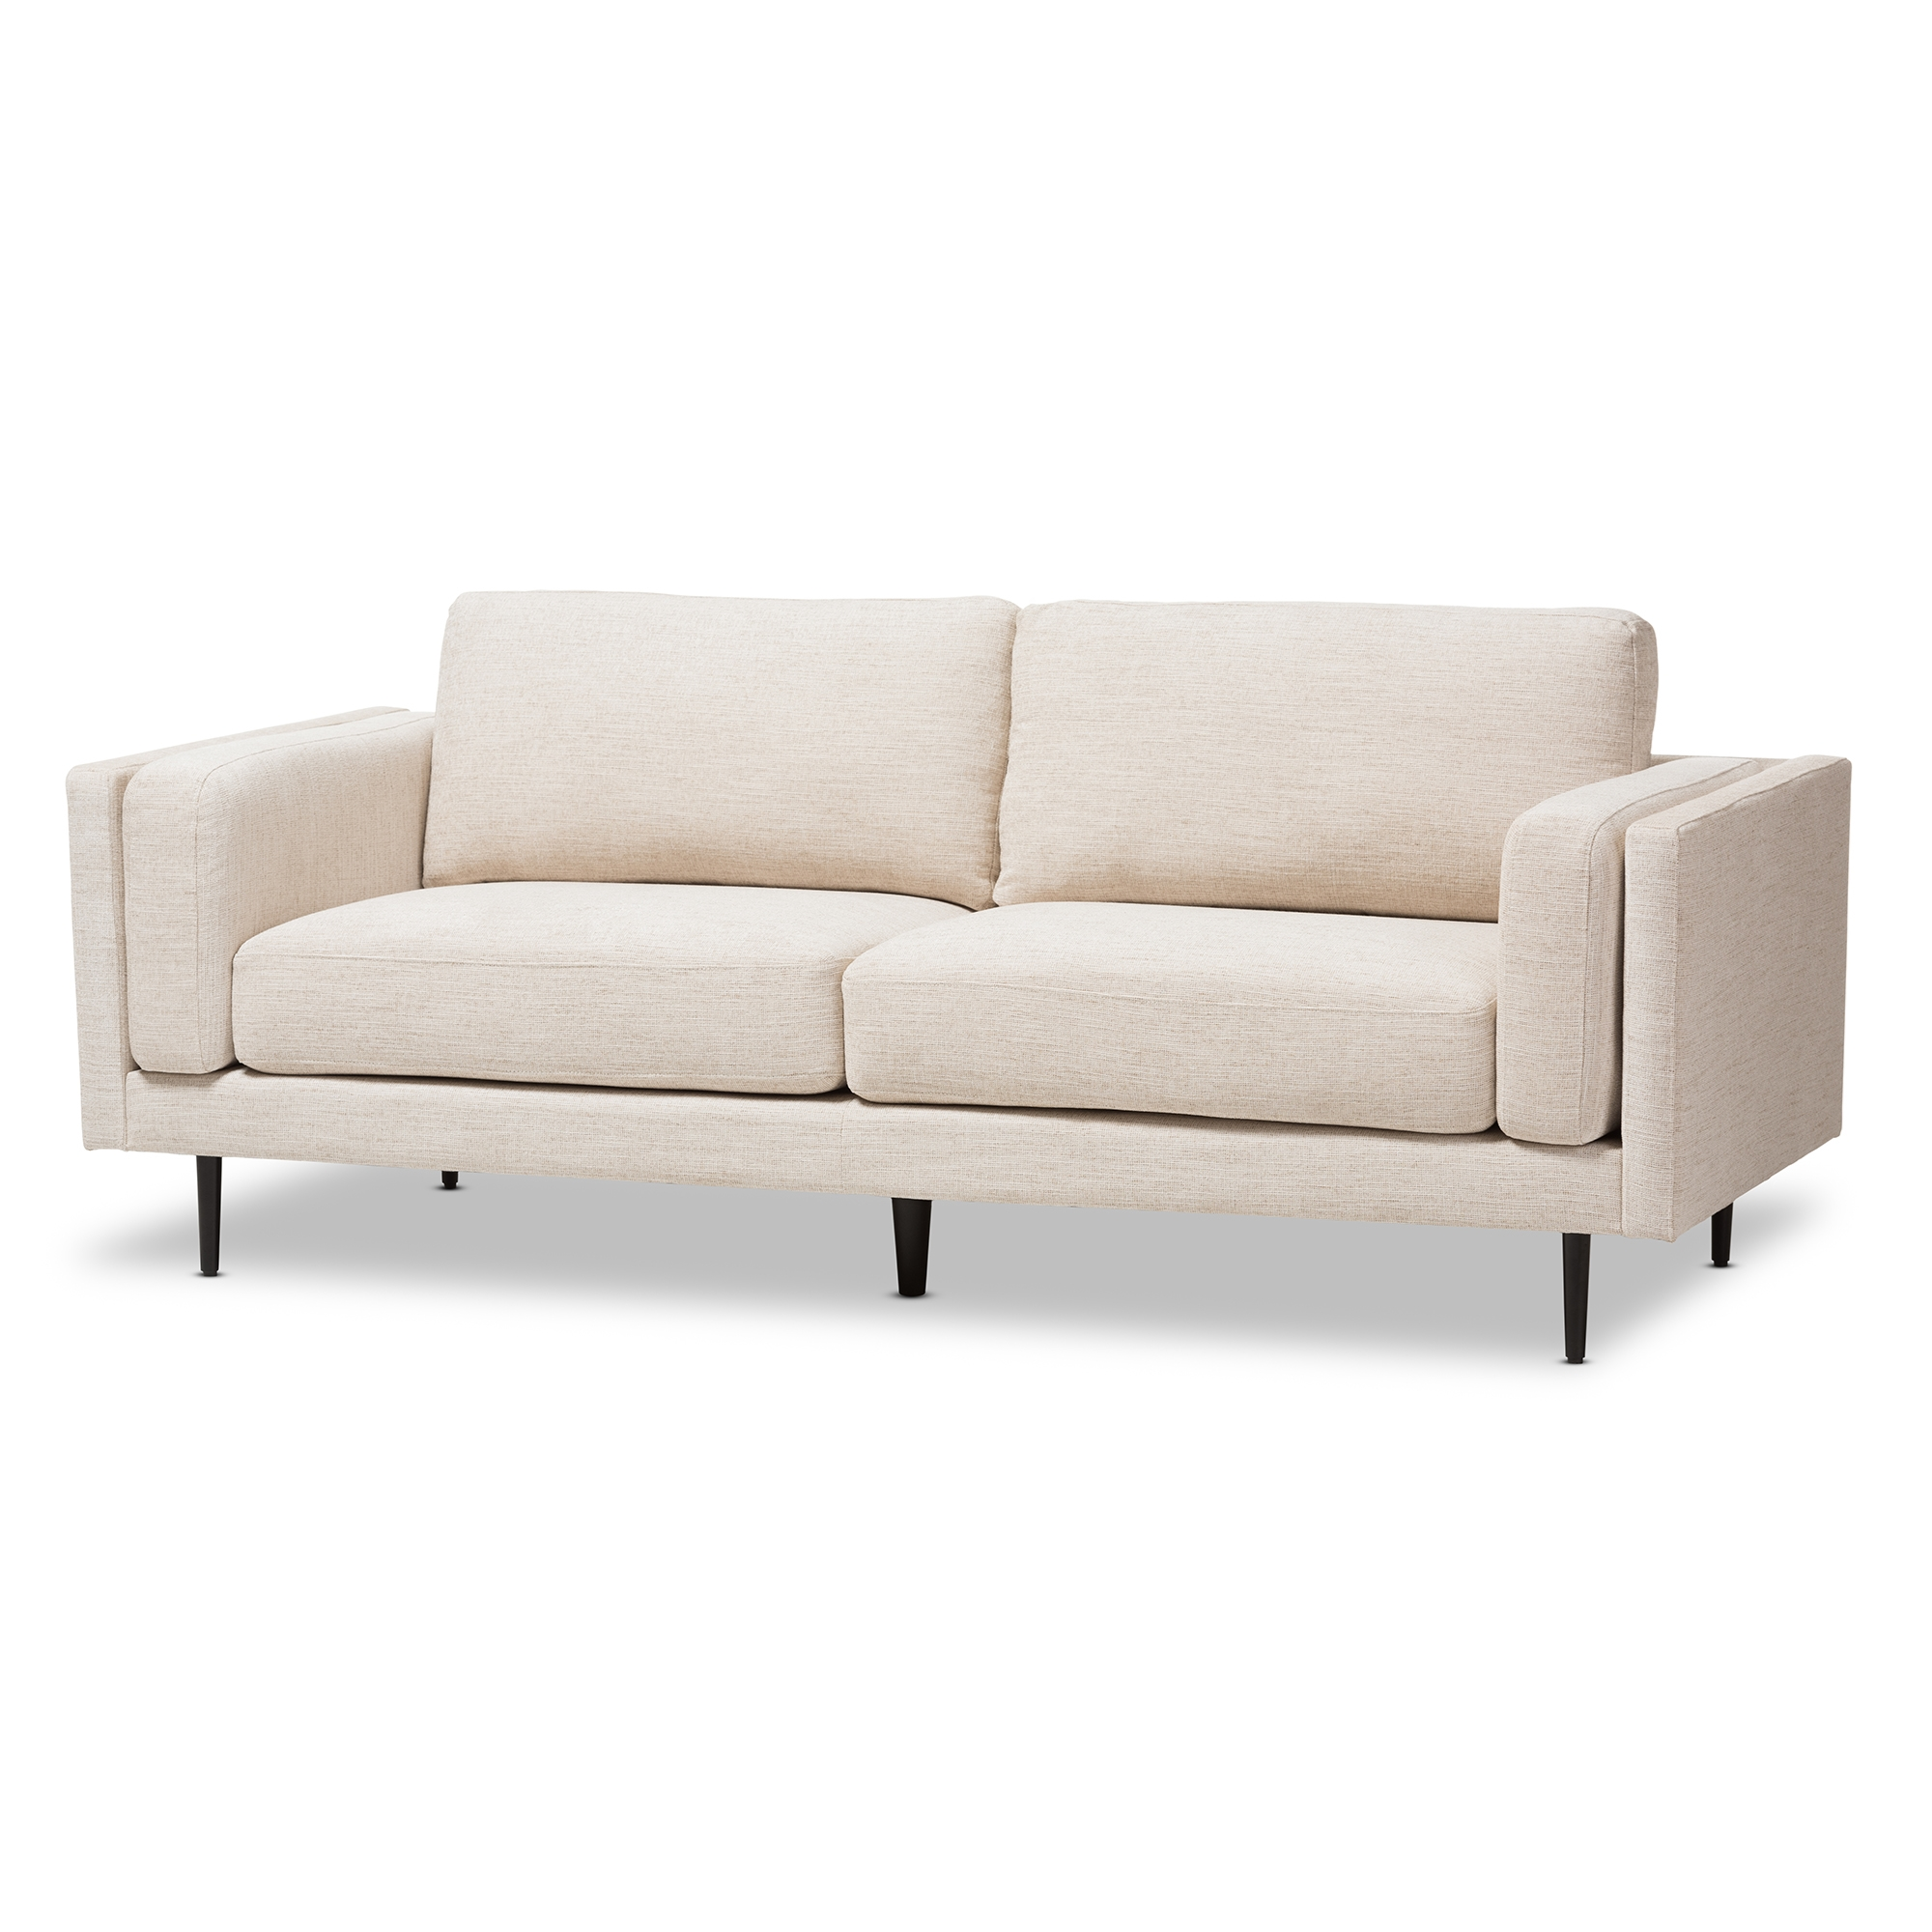 Baxton Studio Brittany Retro Mid Century Modern Light Beige Fabric  Upholstered 3 Seater Sofa